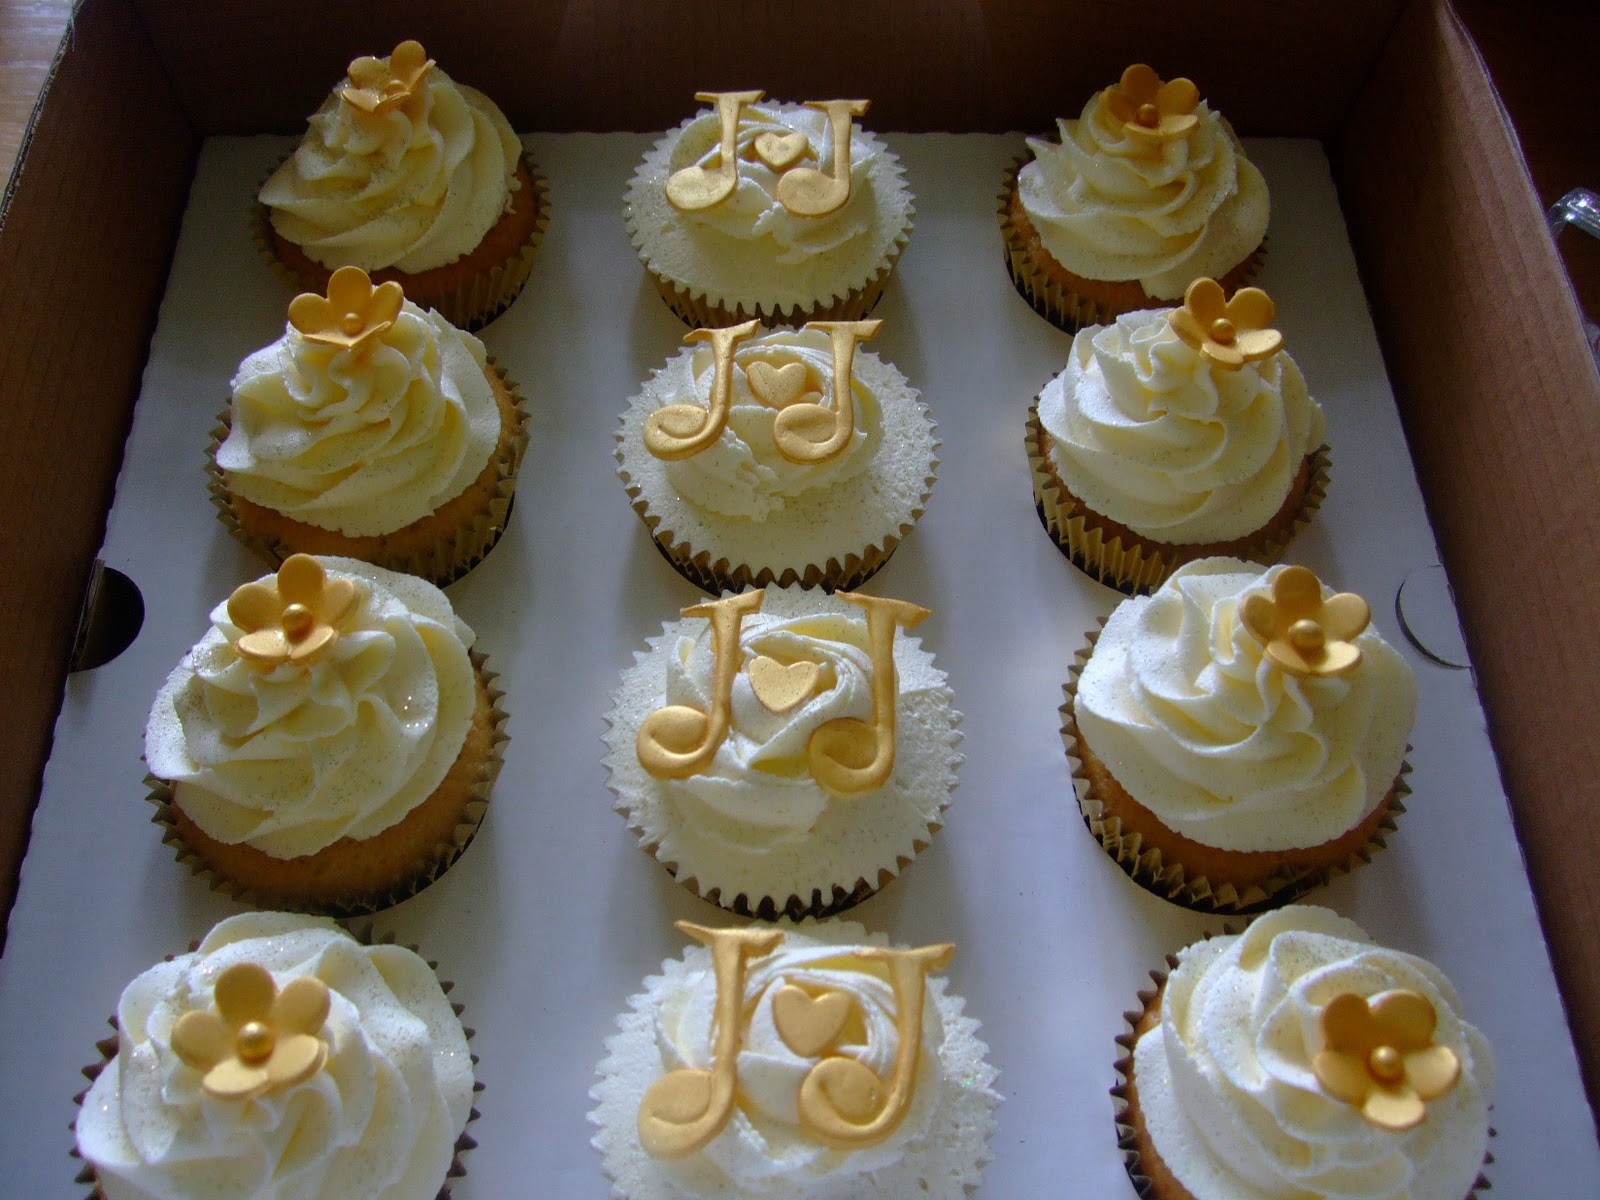 Colourful Cupcakes of Newbury: Golden Wedding Anniversary Cupcakes